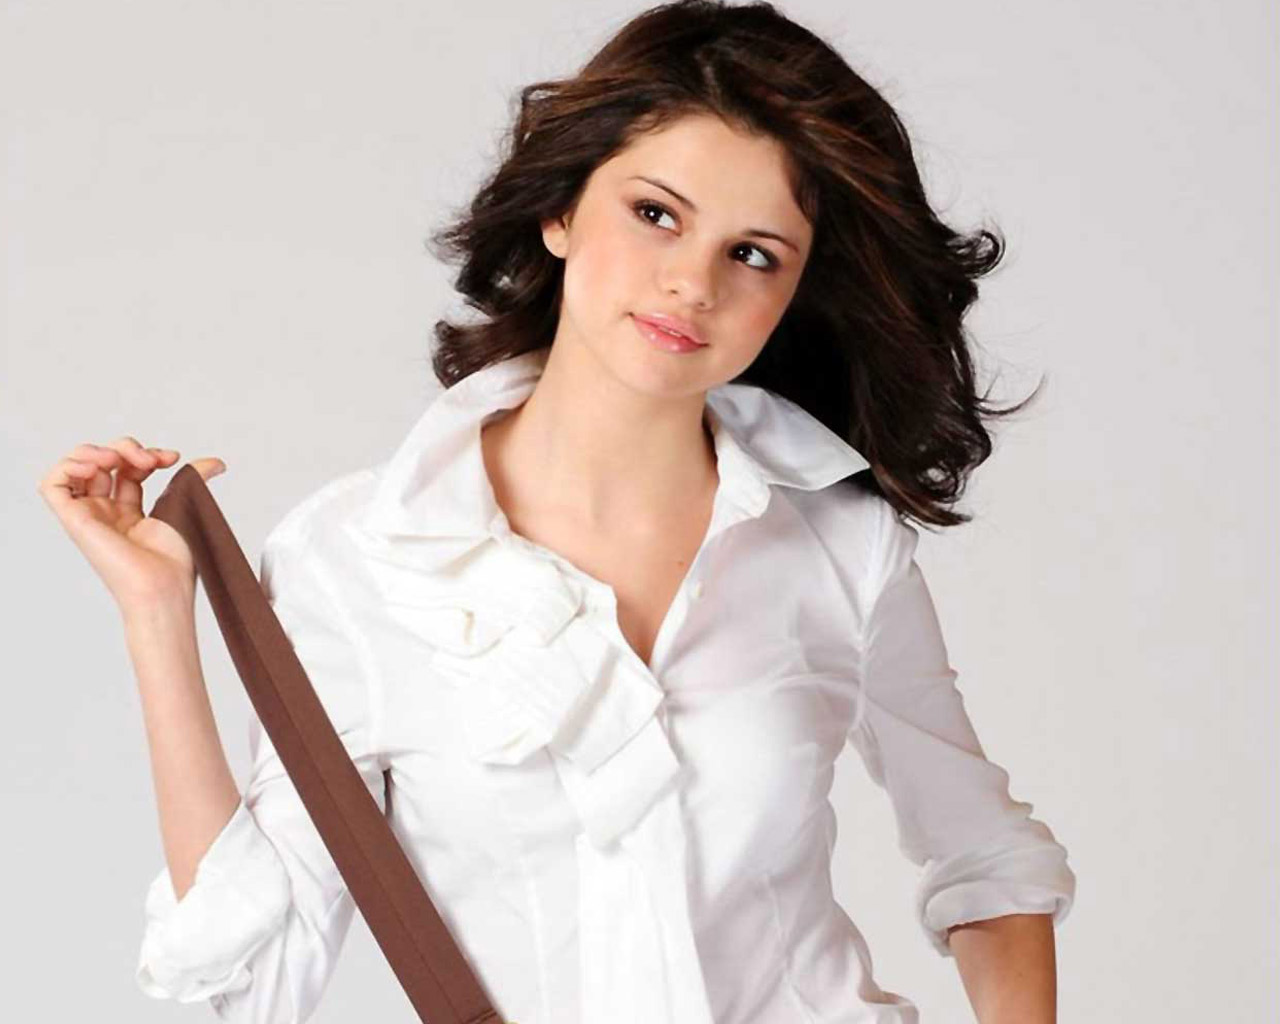 Cute And Wallpapers Best Pics Store Selena Gomez Cute Hd Wallpaper Collection